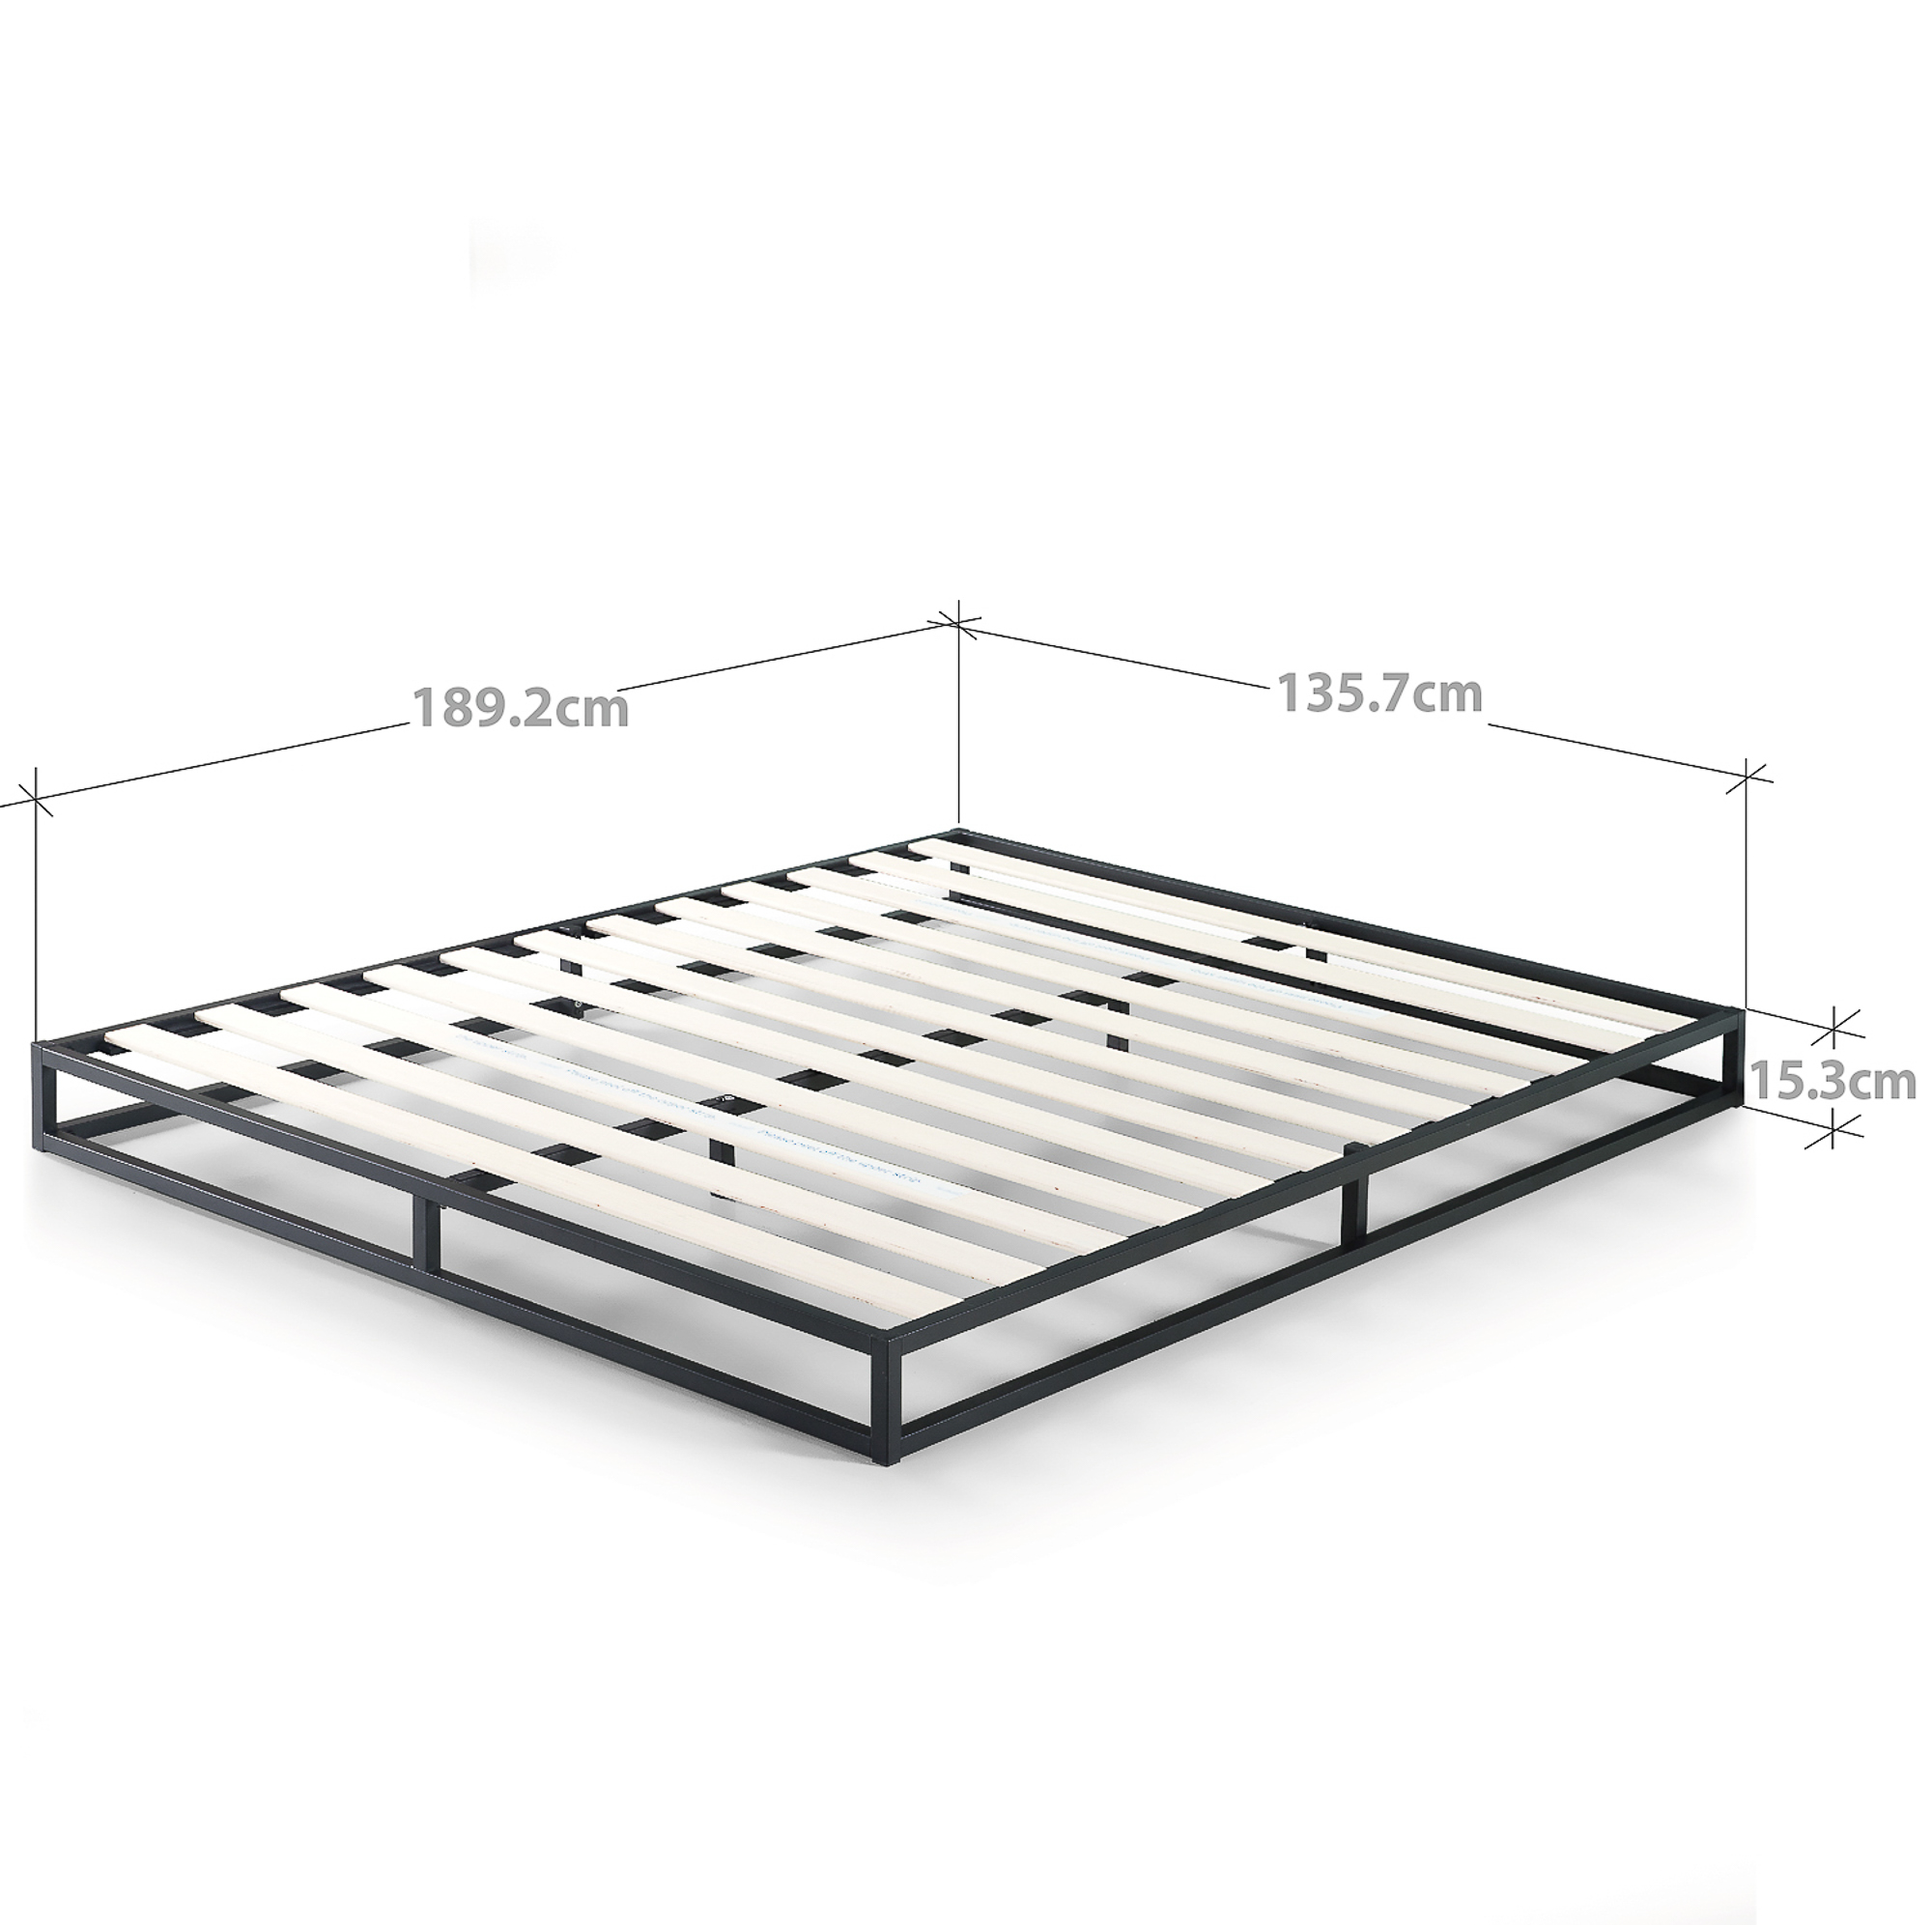 Zinus-Joesph-SINGLE-DOUBLE-QUEEN-KING-Metal-Low-Bed-Base-Mattress-Frame-Timber thumbnail 21